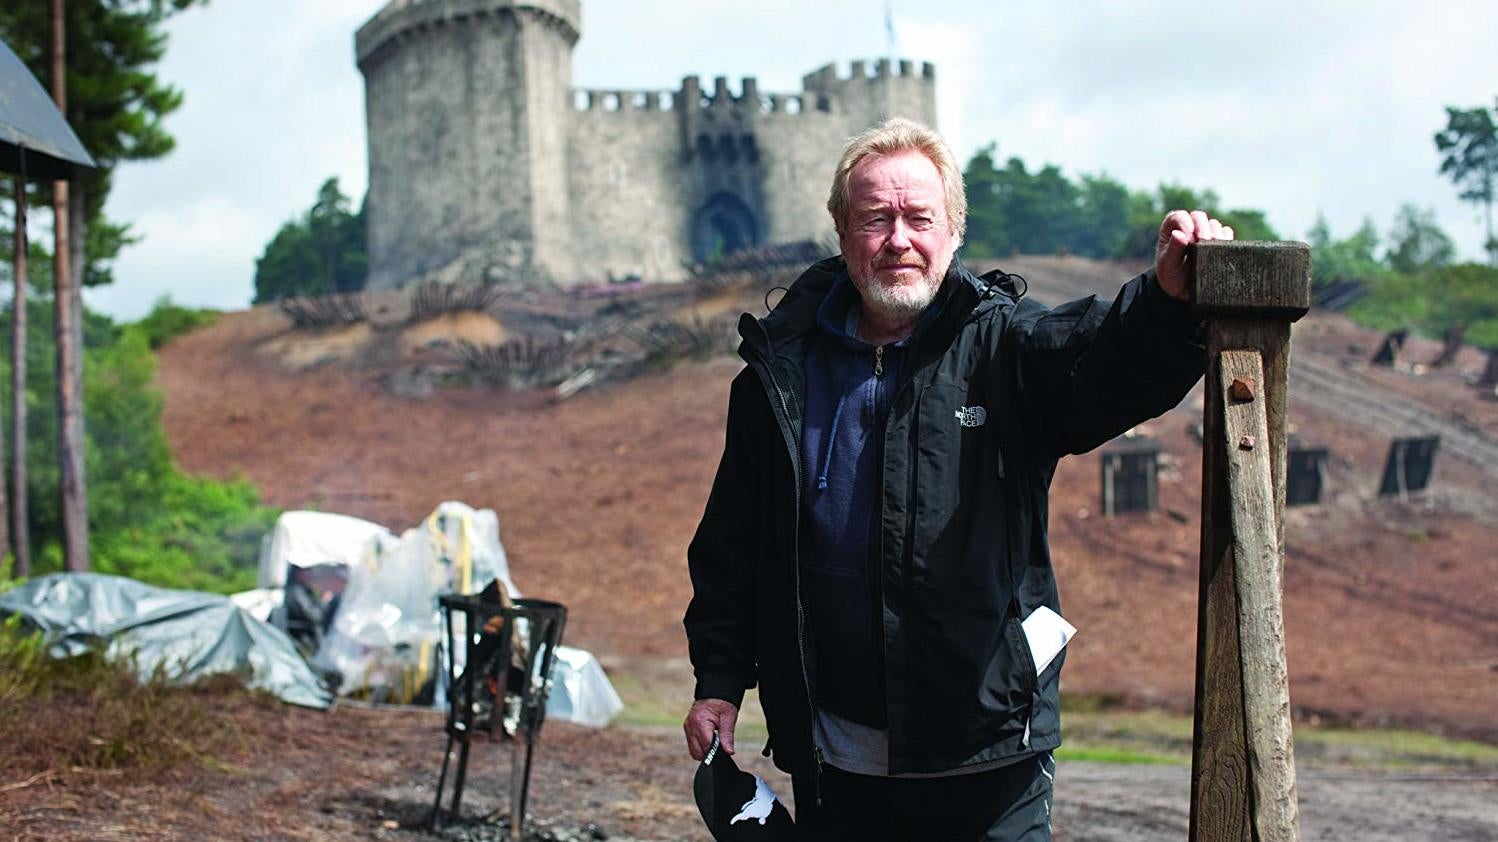 Ridley Scott Will Make His TV Directorial Debut On A New Sci-Fi Series